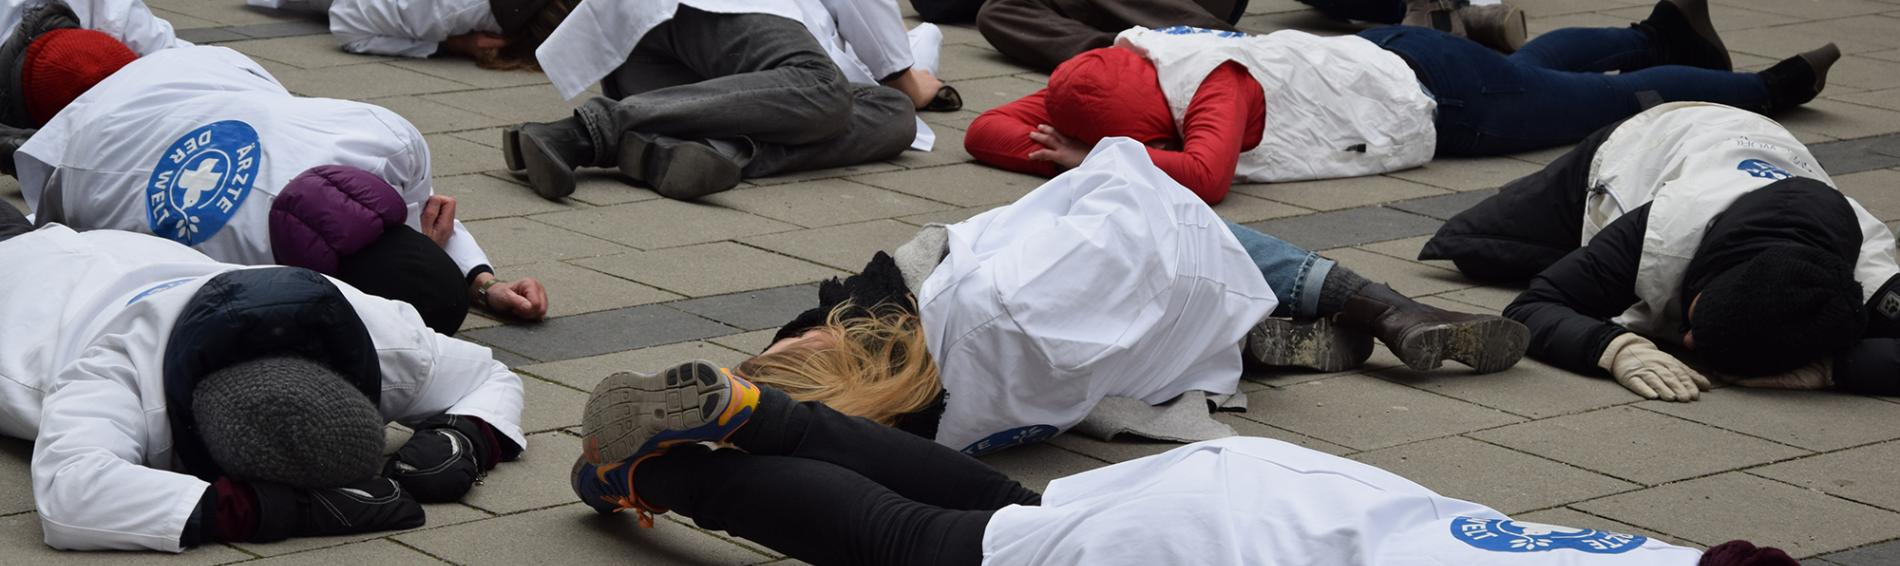 Flashmob in München zur Kampagne Targets of the World